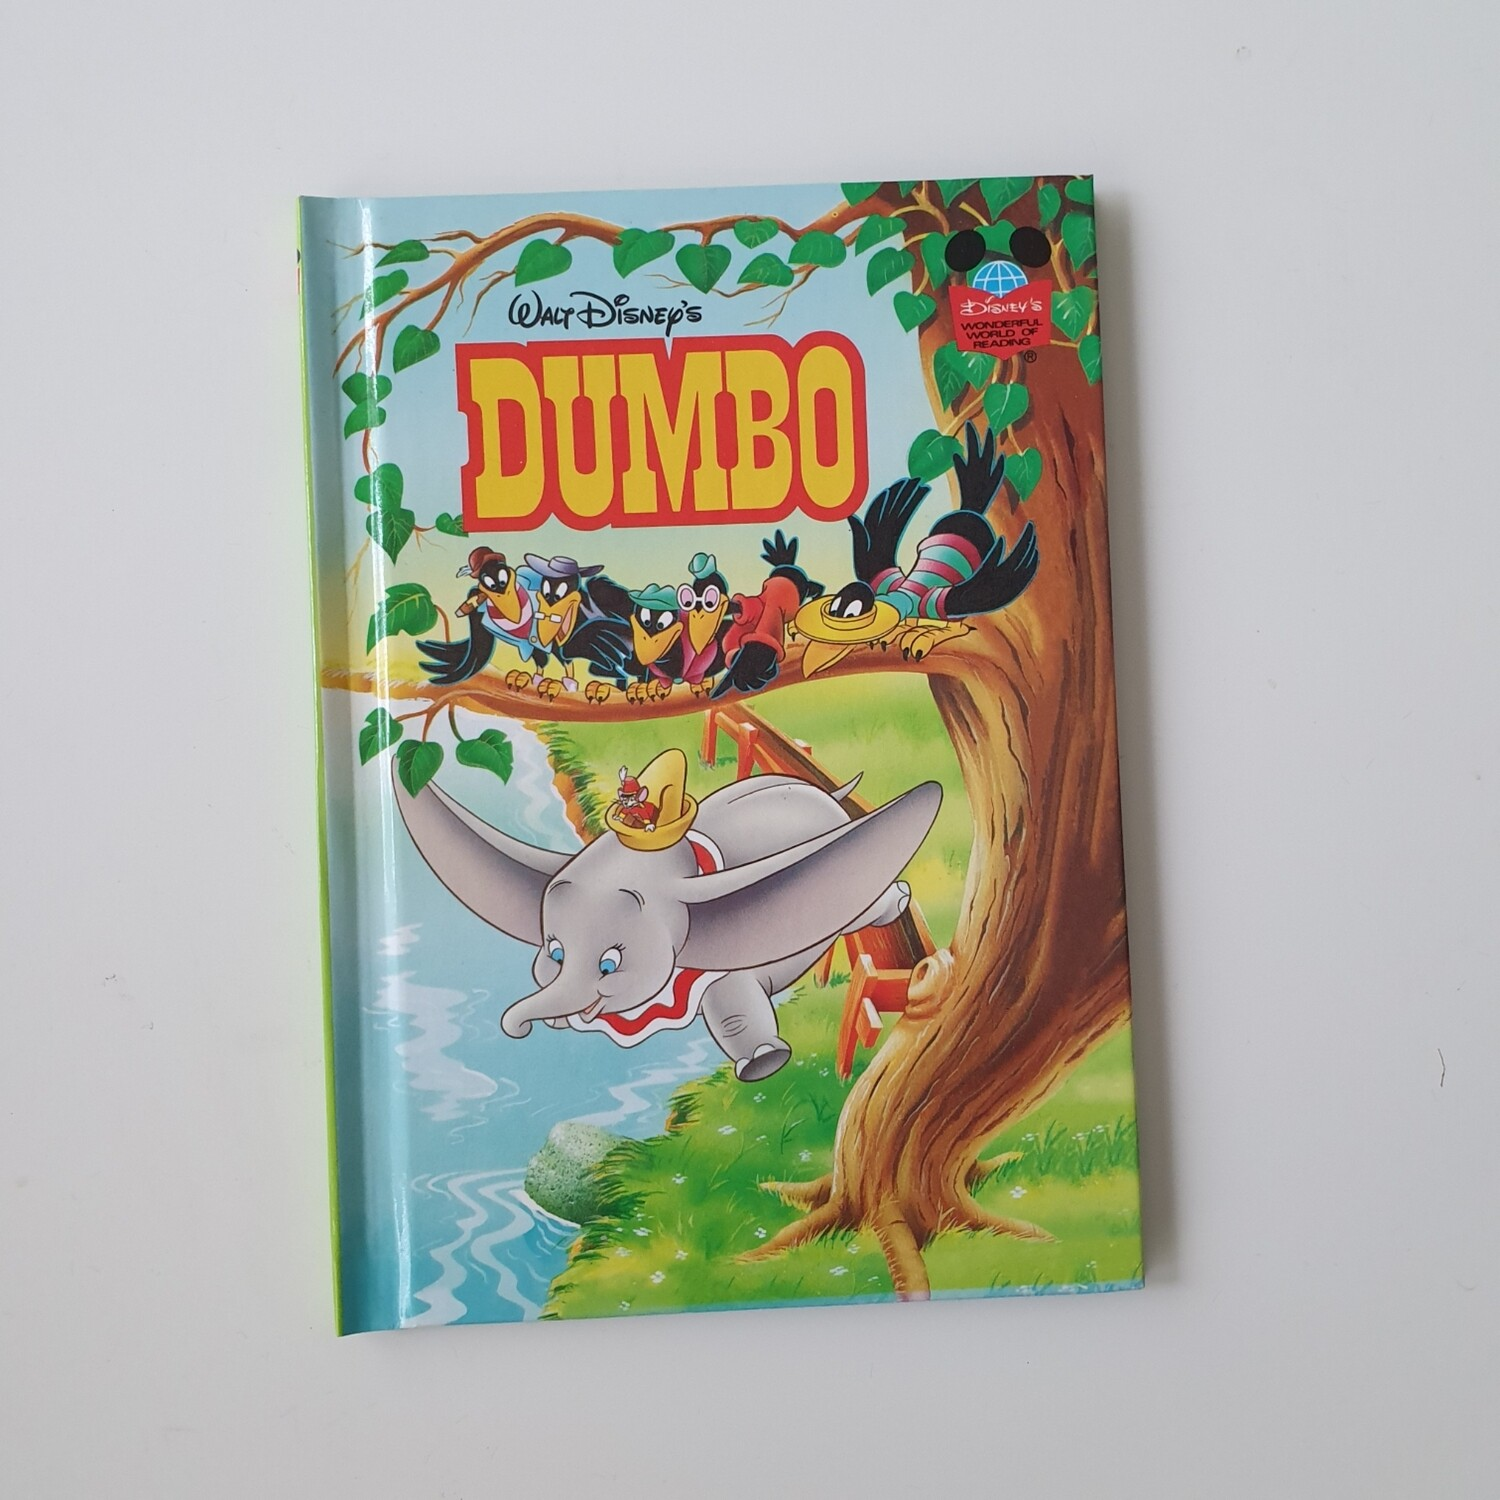 Dumbo Notebook - choice of covers